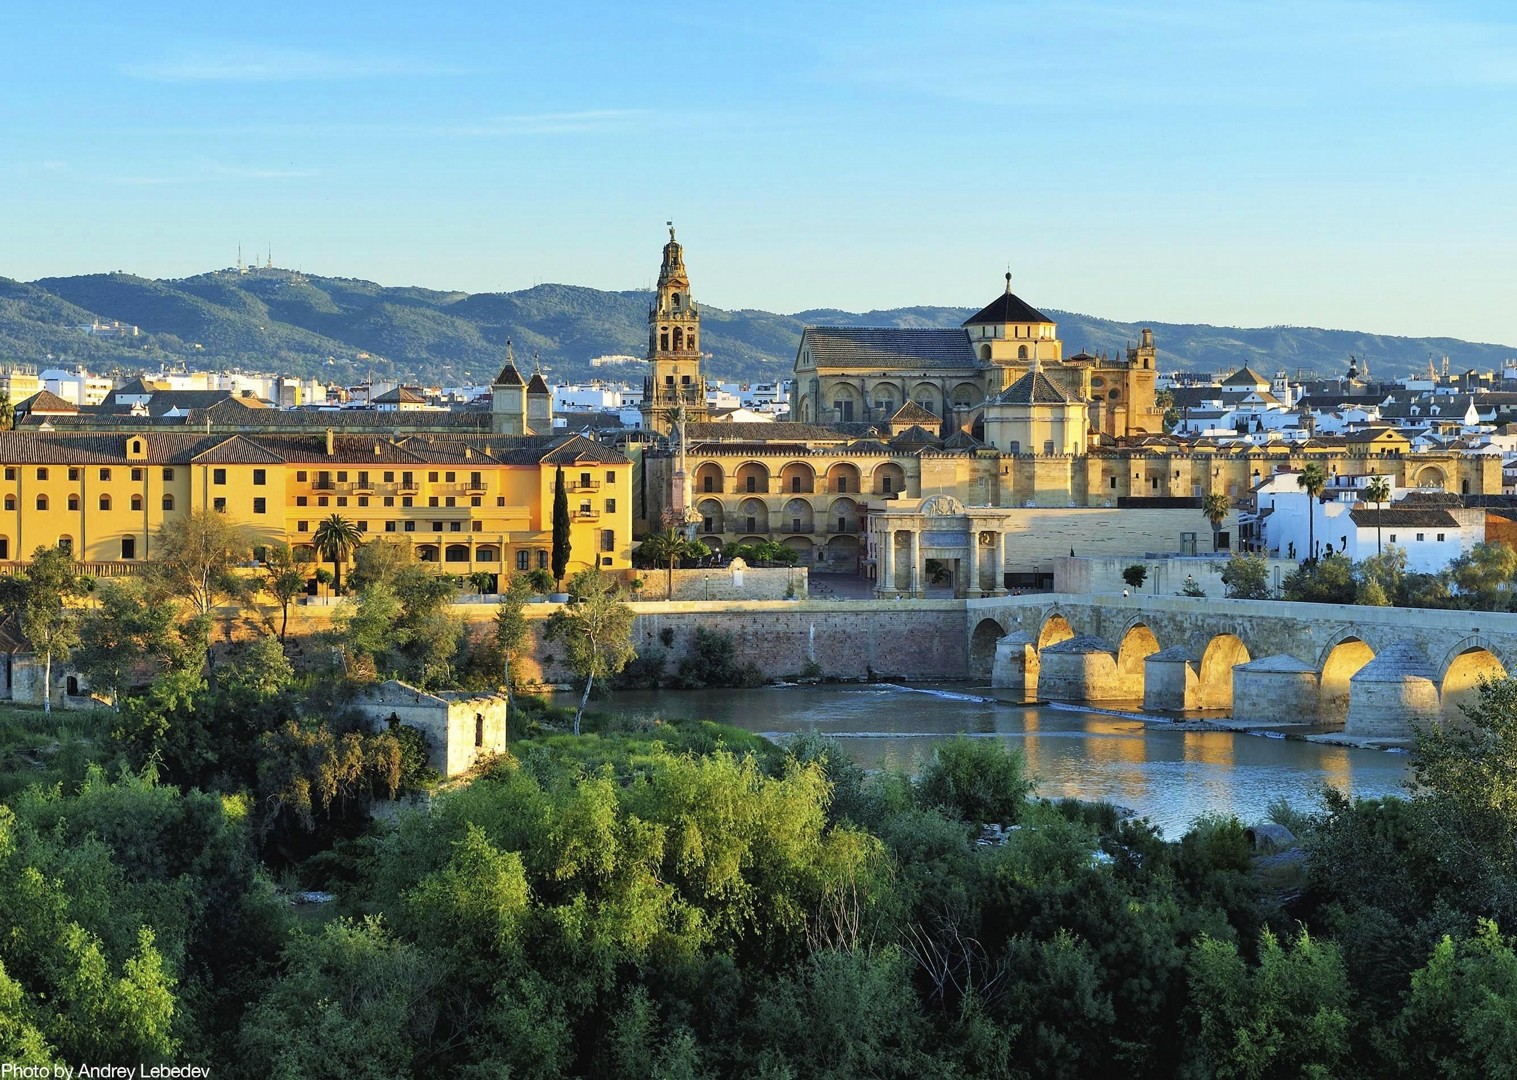 cordoba-granada-to-seville-guided-leisure-cycling-holiday-in-spain.jpg - Spain - Granada to Seville - Leisure Cycling